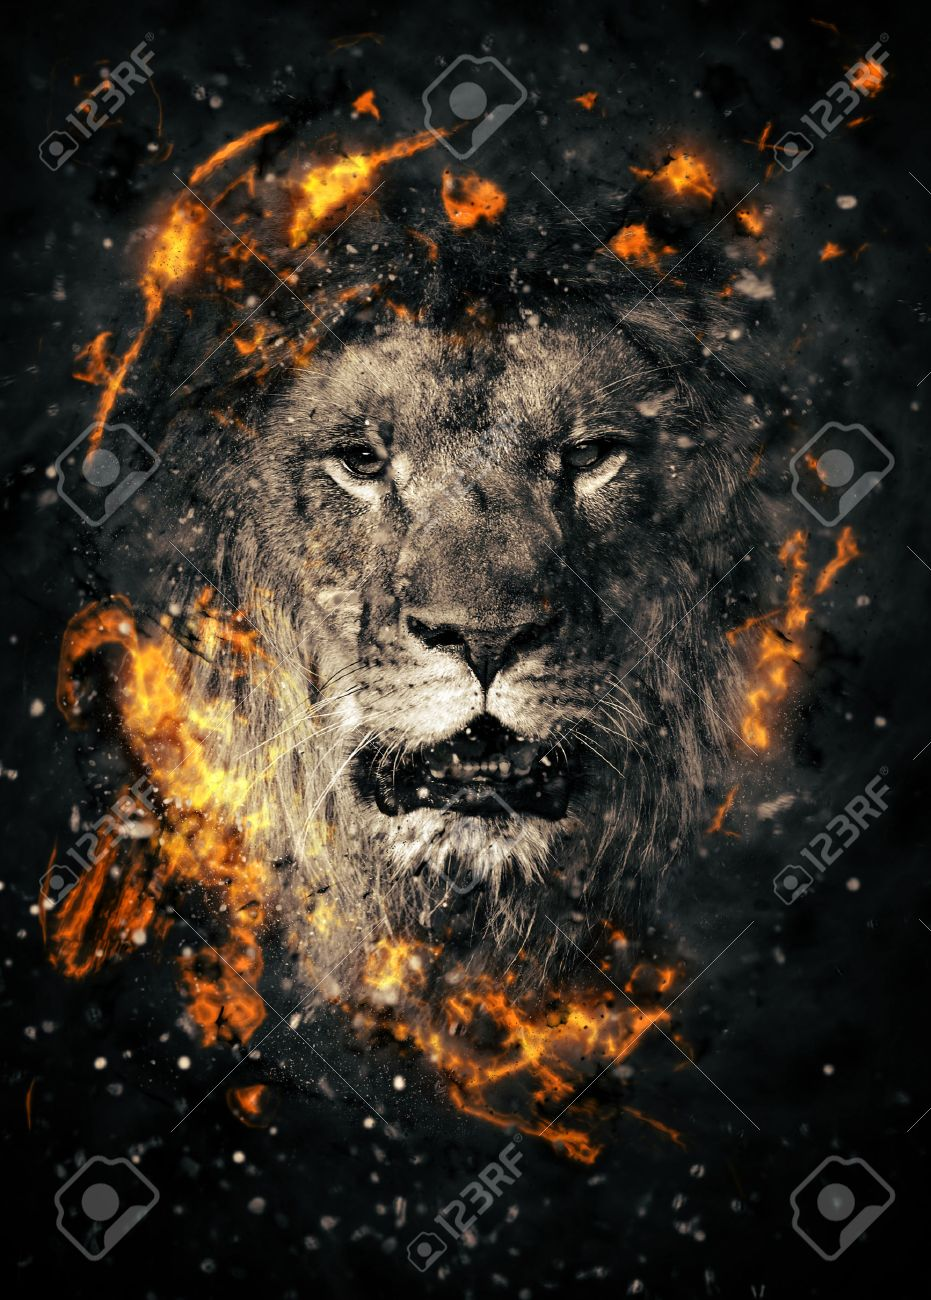 Lion portrait in fire on black background Standard-Bild - 38341154